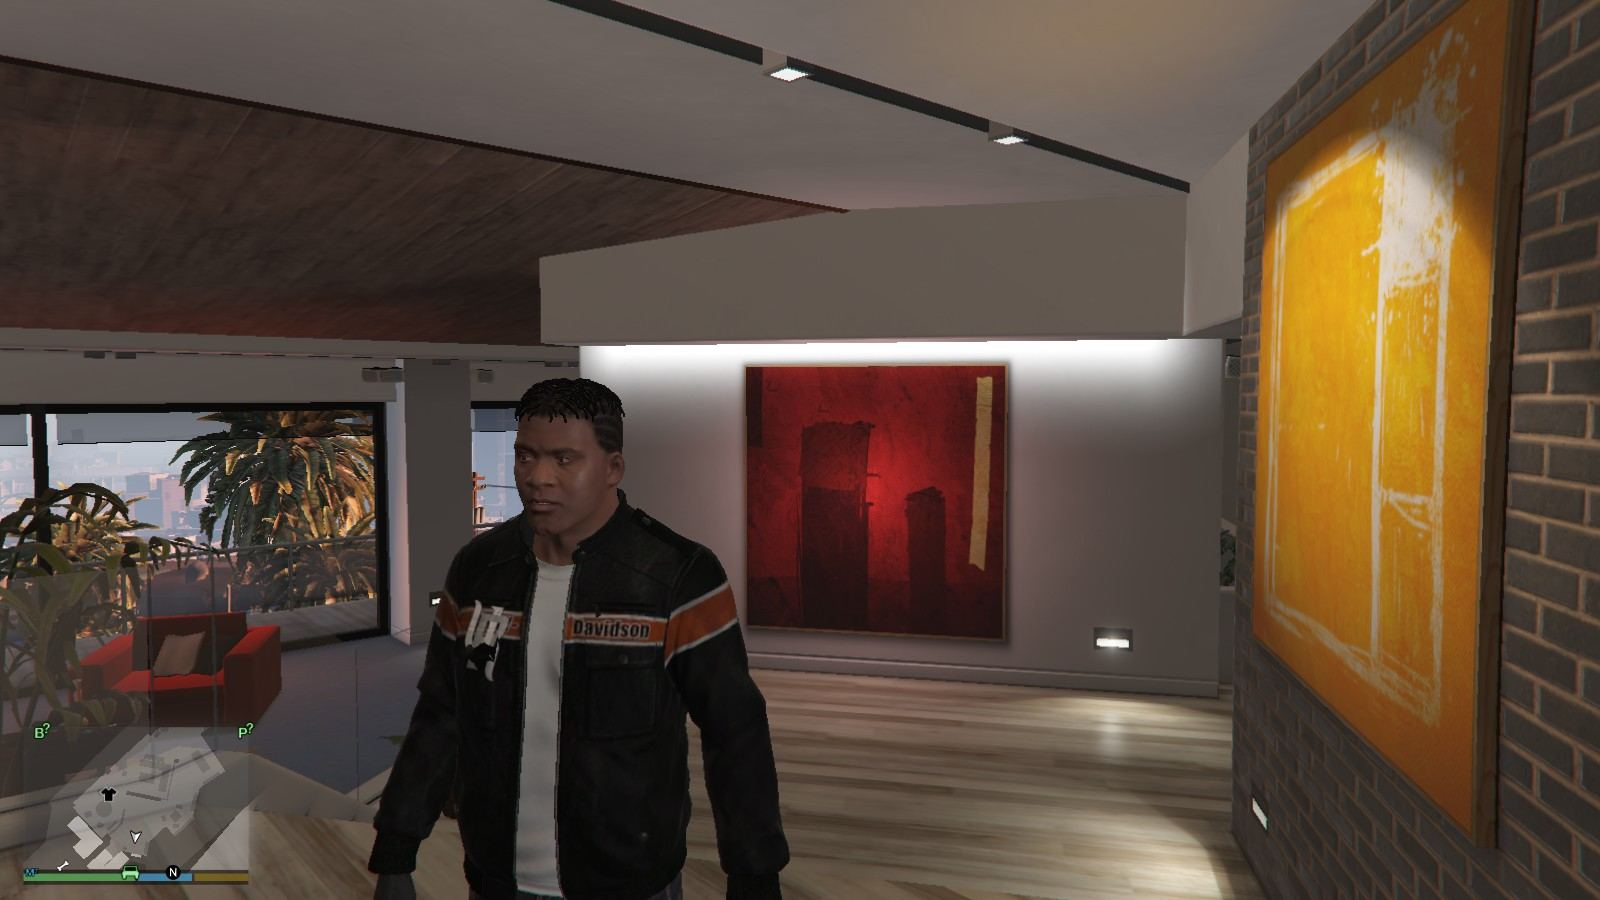 Harley Davidson Motocycle Leather Jacket GTA5 Mods (1)